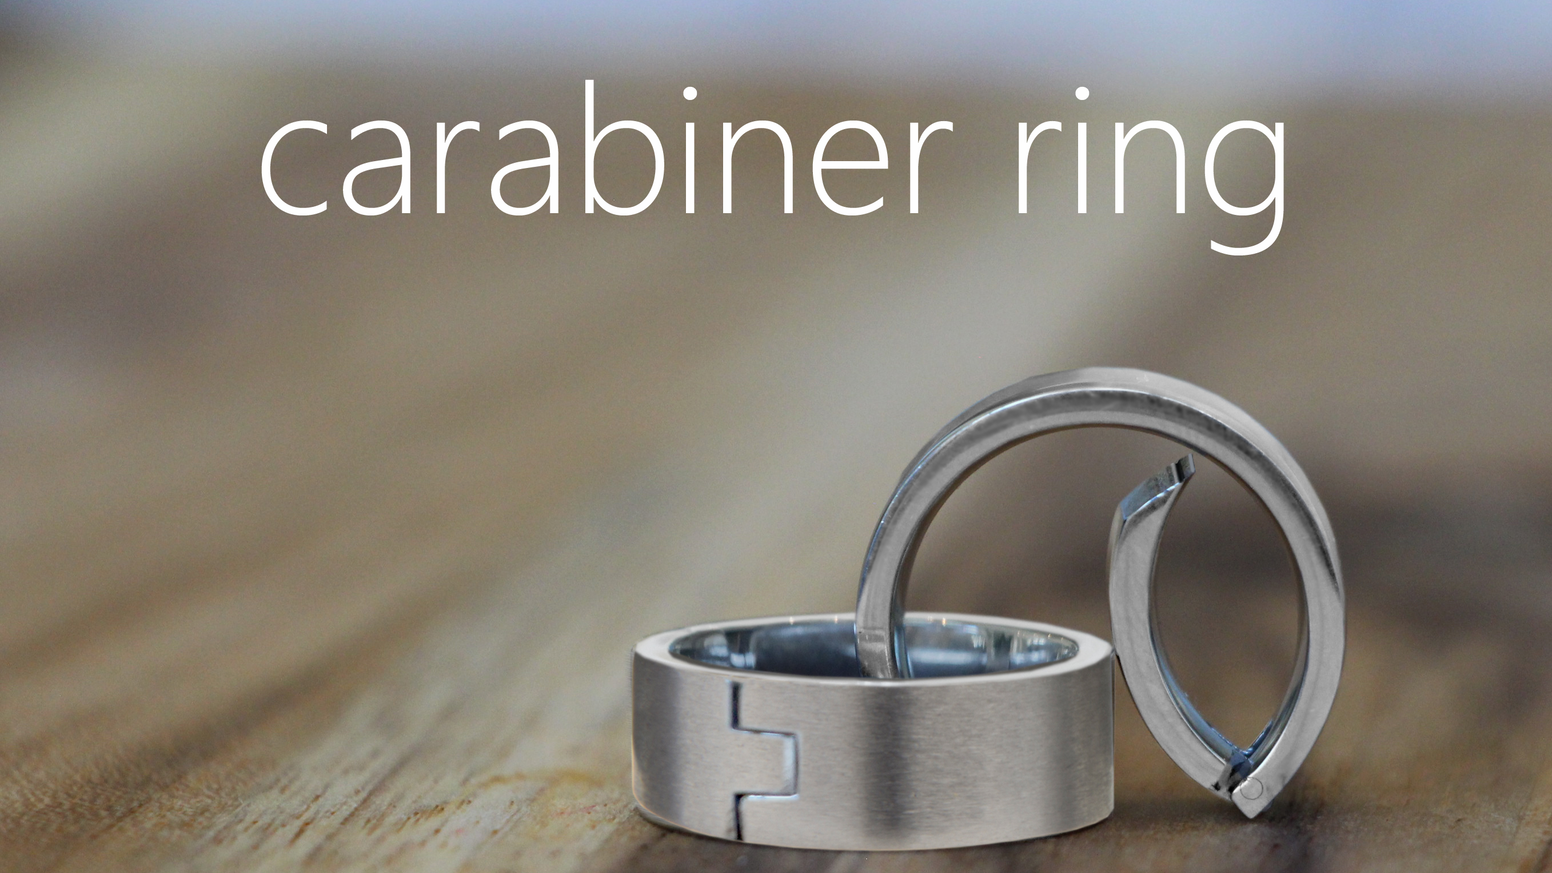 caraband rings clip securely to your belt loop, pack, and more.  Whatever your passion, profession, style - clip on the caraband.